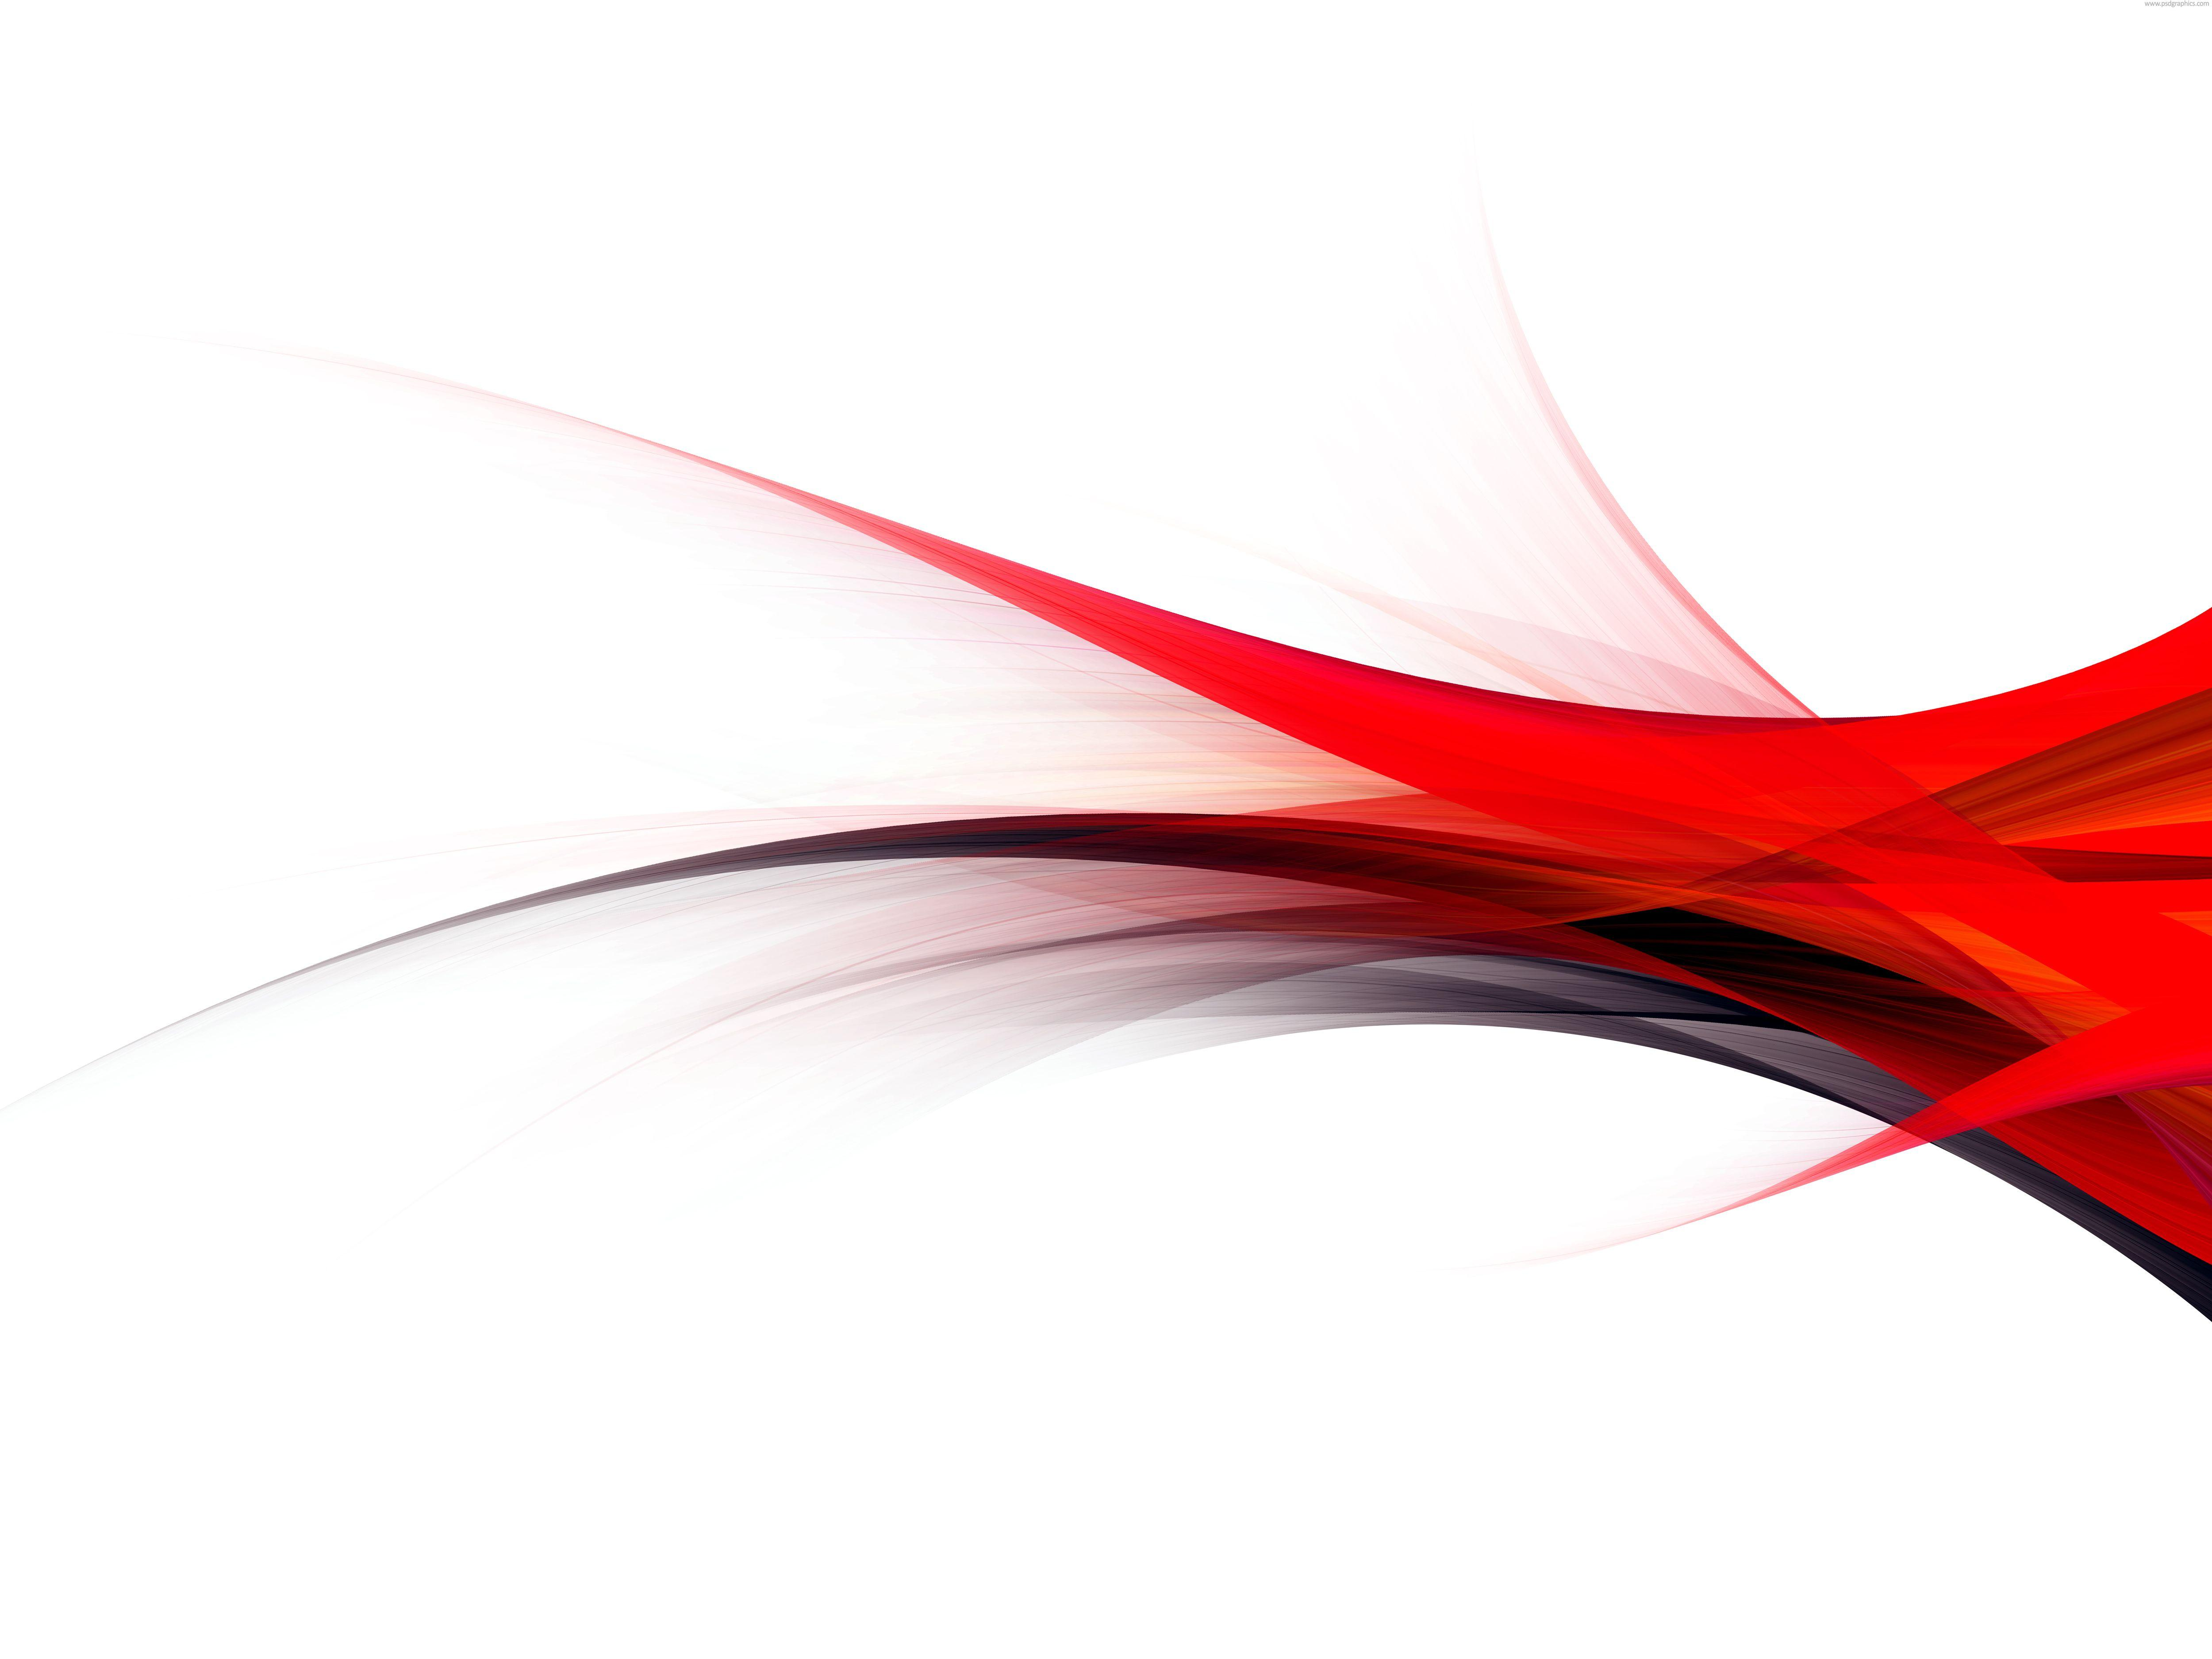 Red And White Abstract Backgrounds HD - Wallpaper Cave